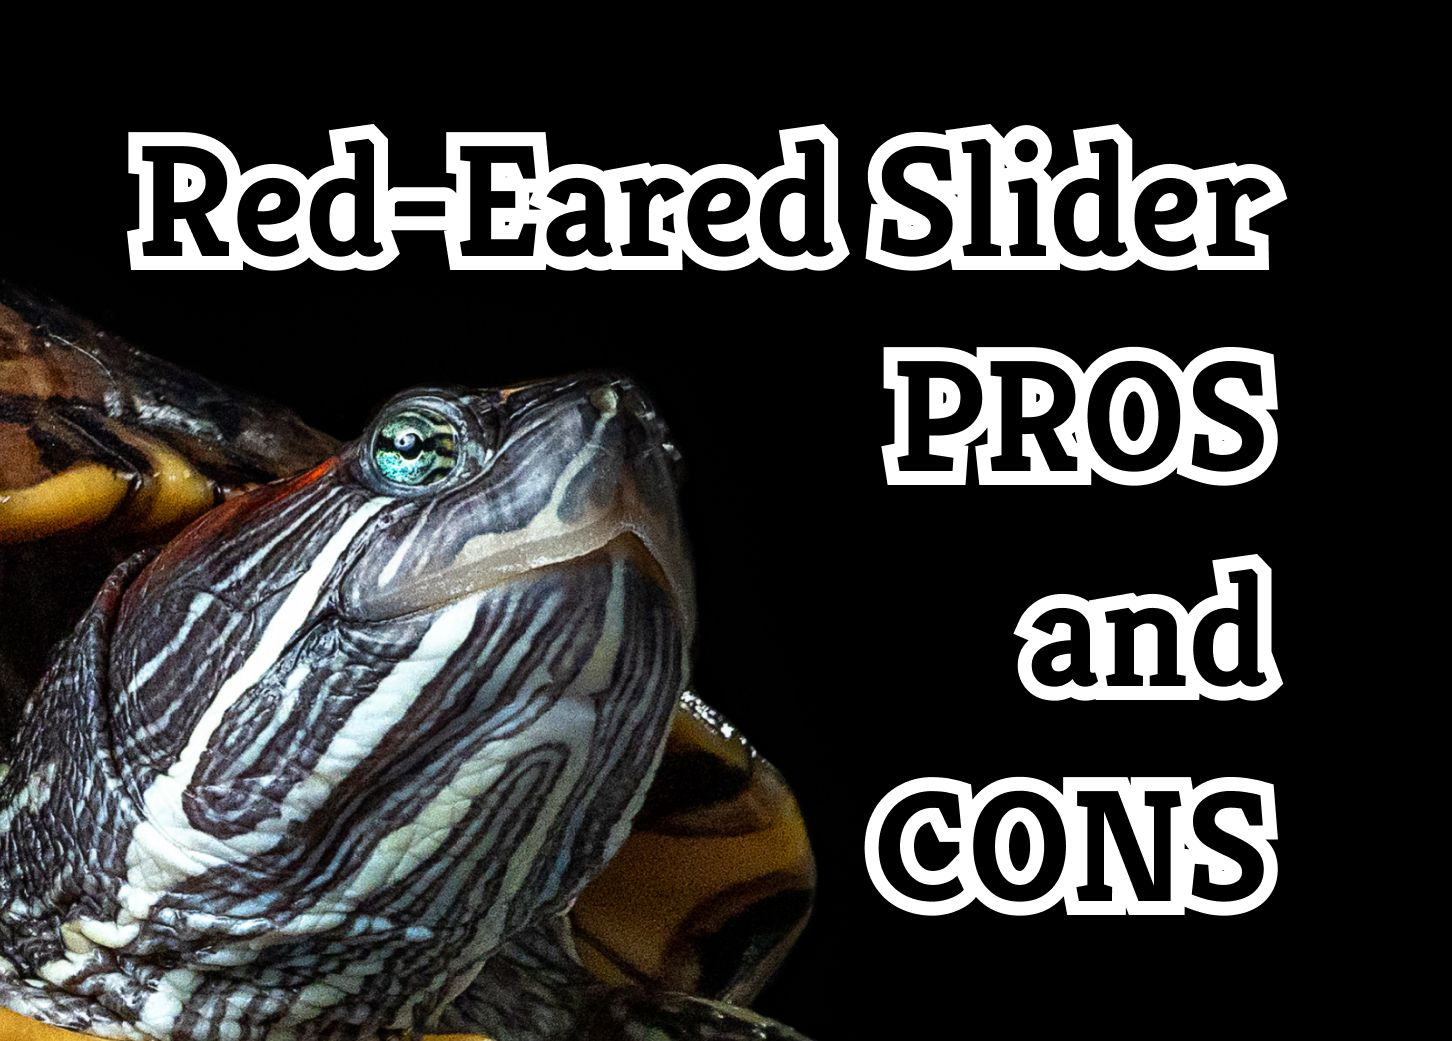 9 Things you Should Know About Red-Eared Slider Turtles